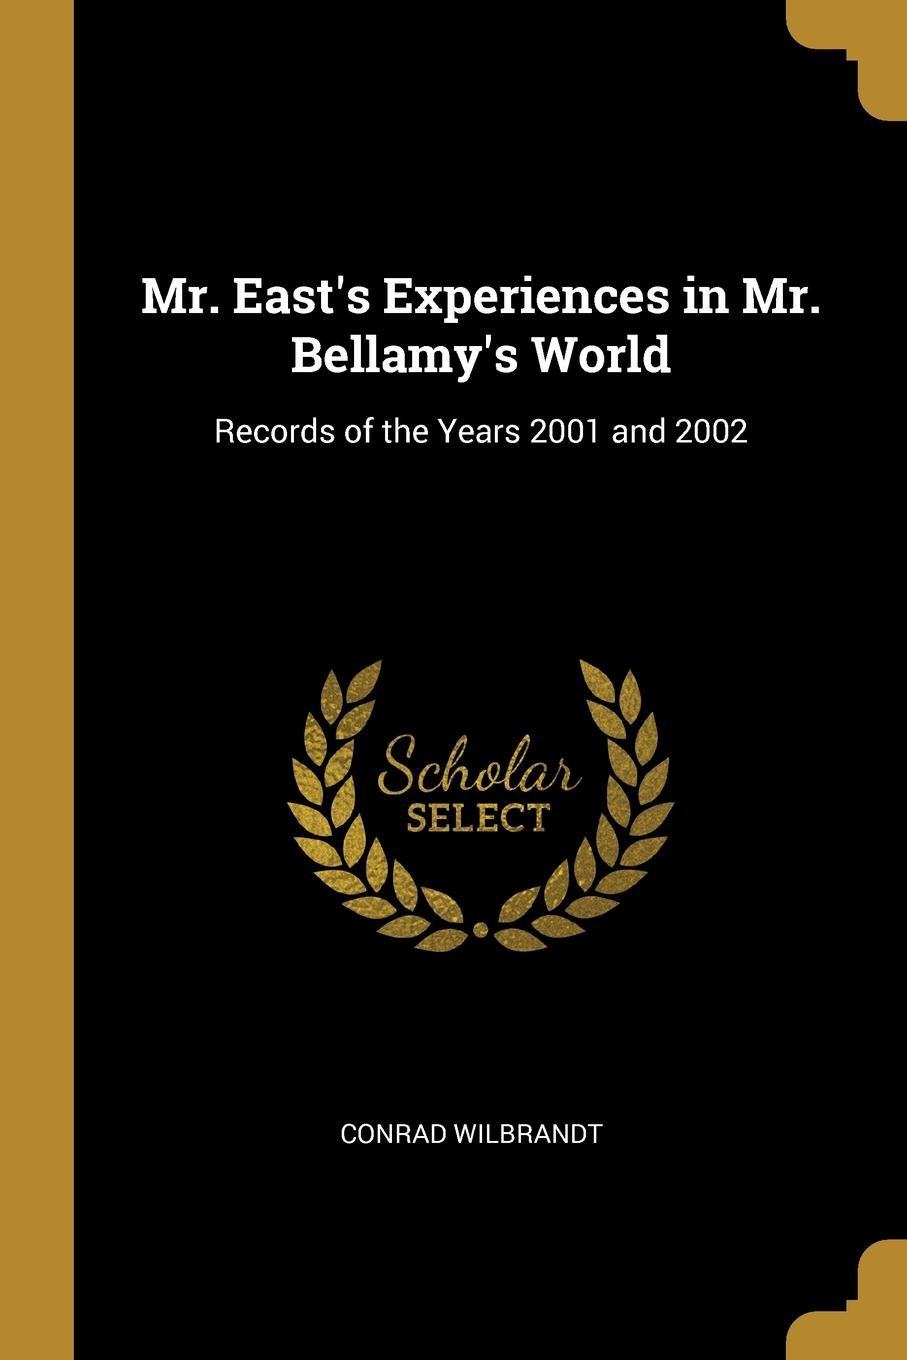 Mr. East.s Experiences in Mr. Bellamy.s World. Records of the Years 2001 and 2002